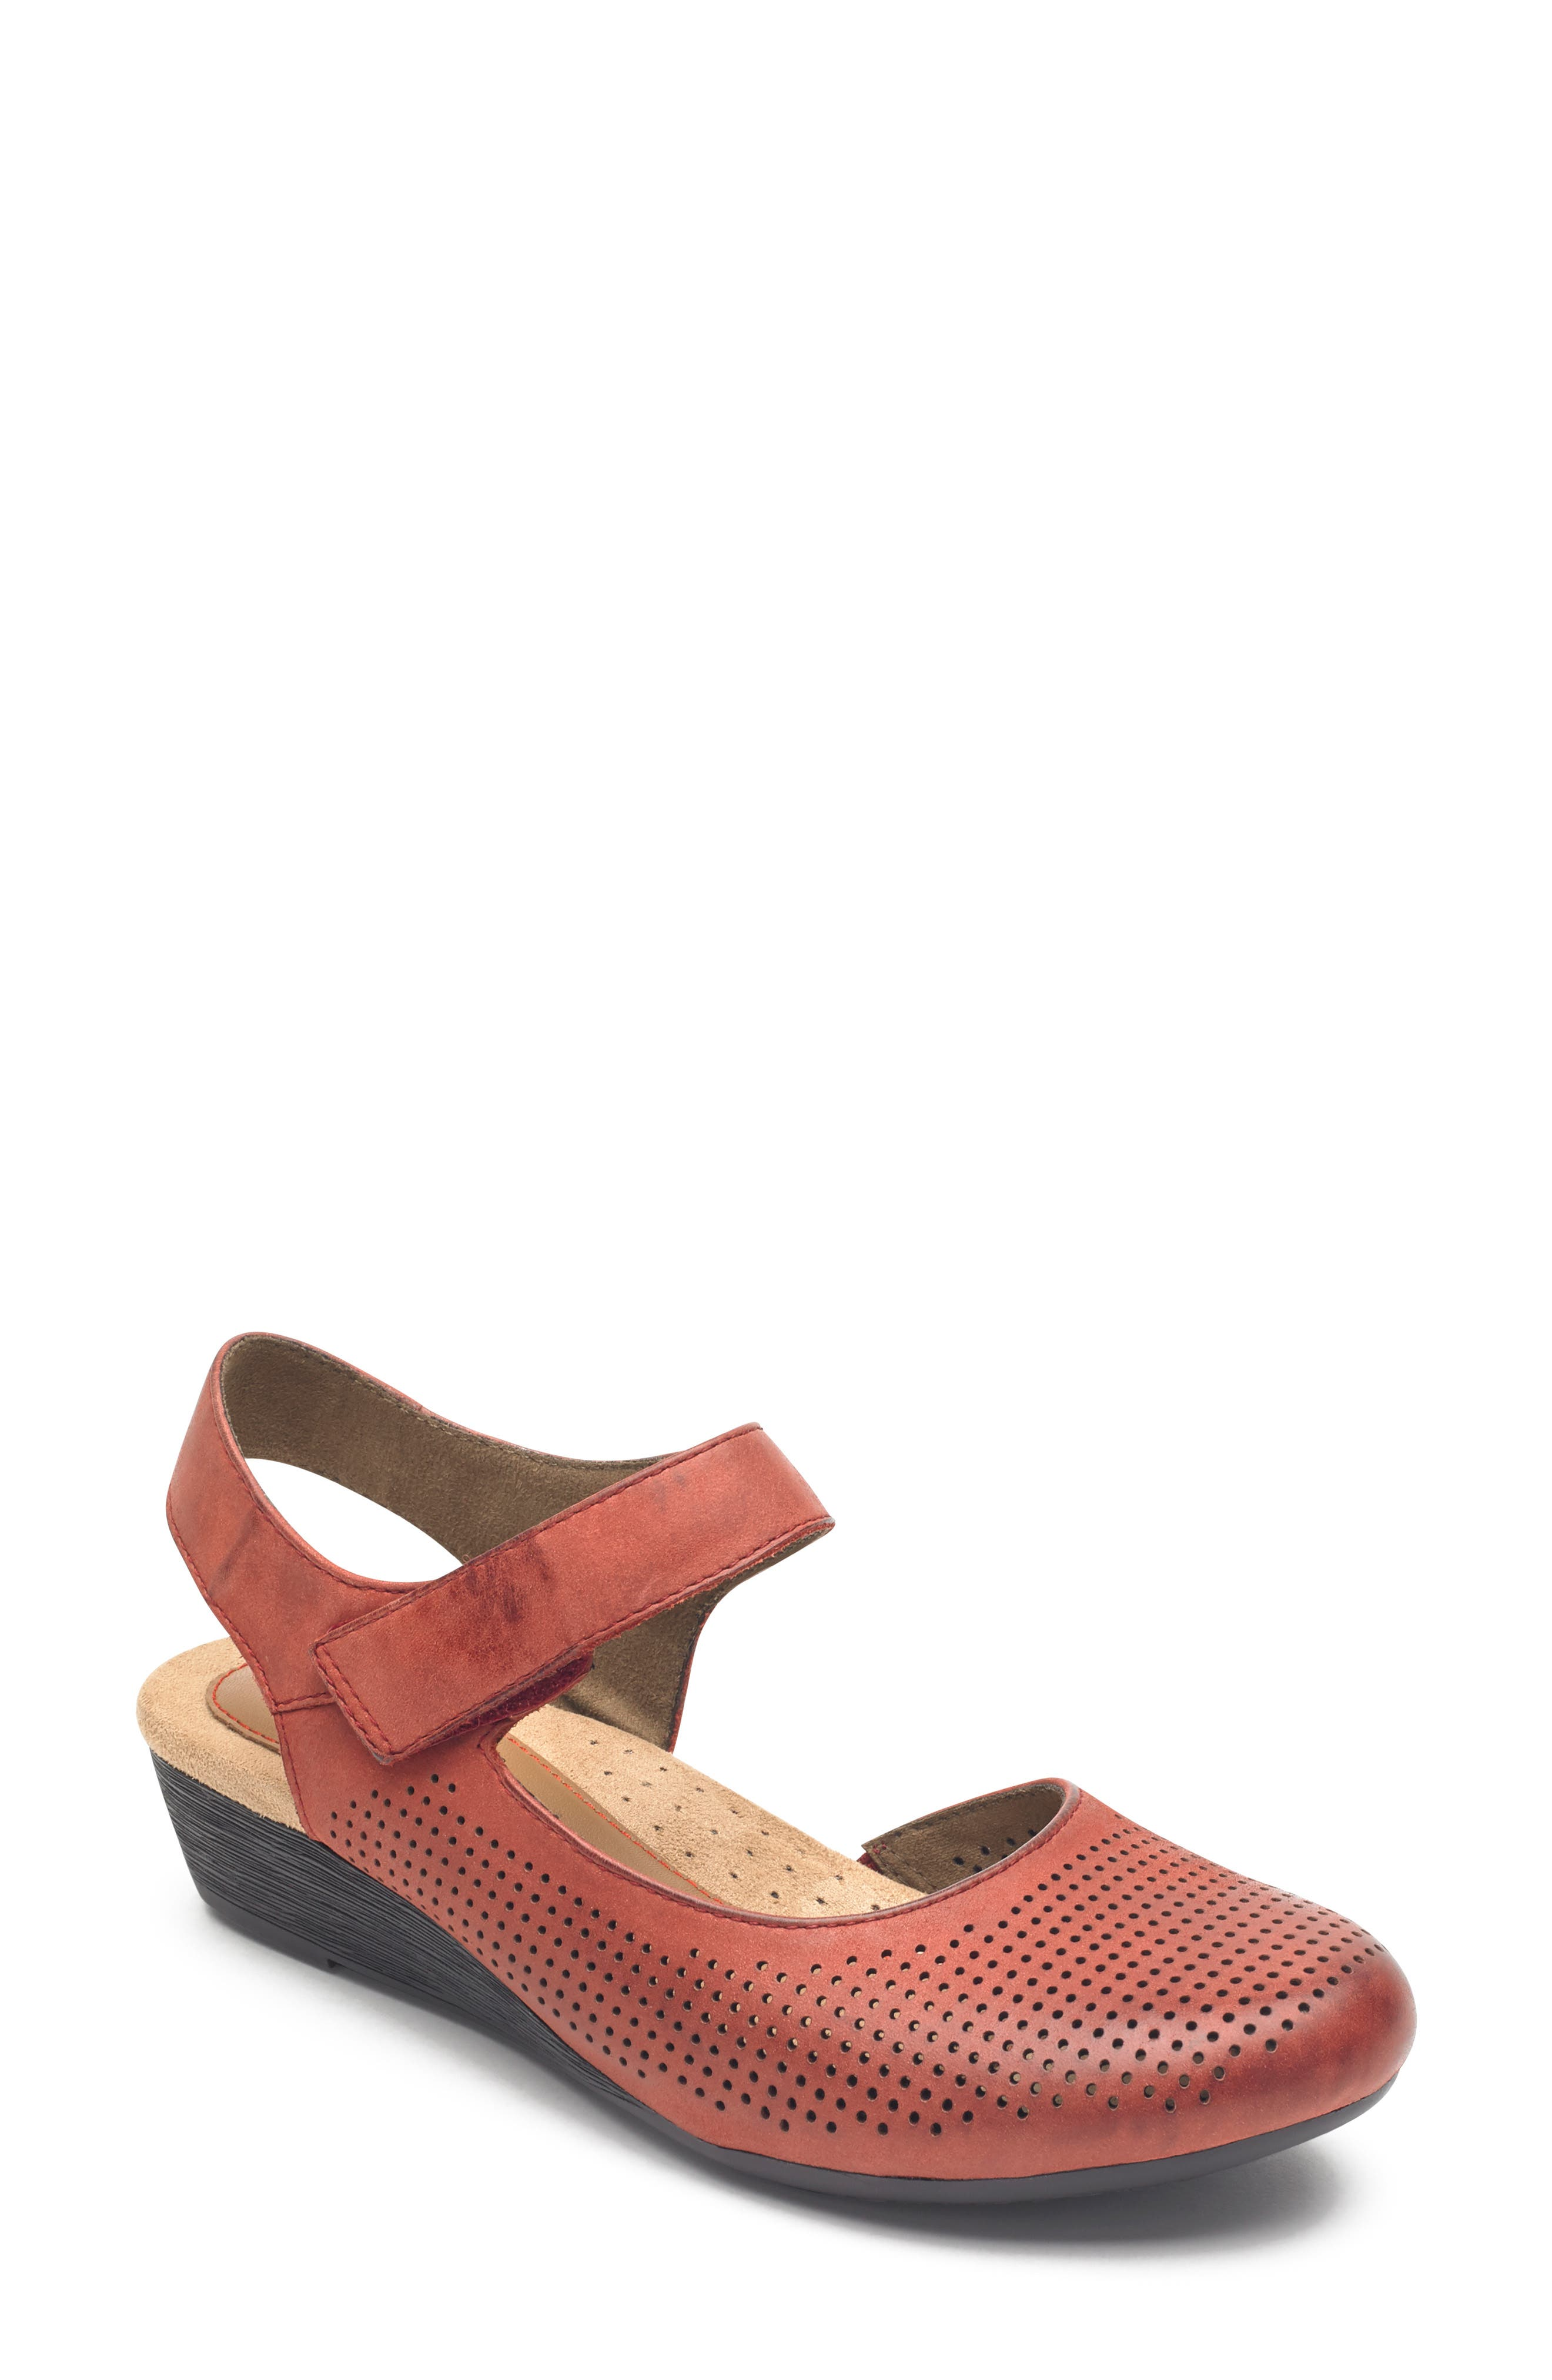 Rockport Cobb Hill Judson Mary Jane, Red